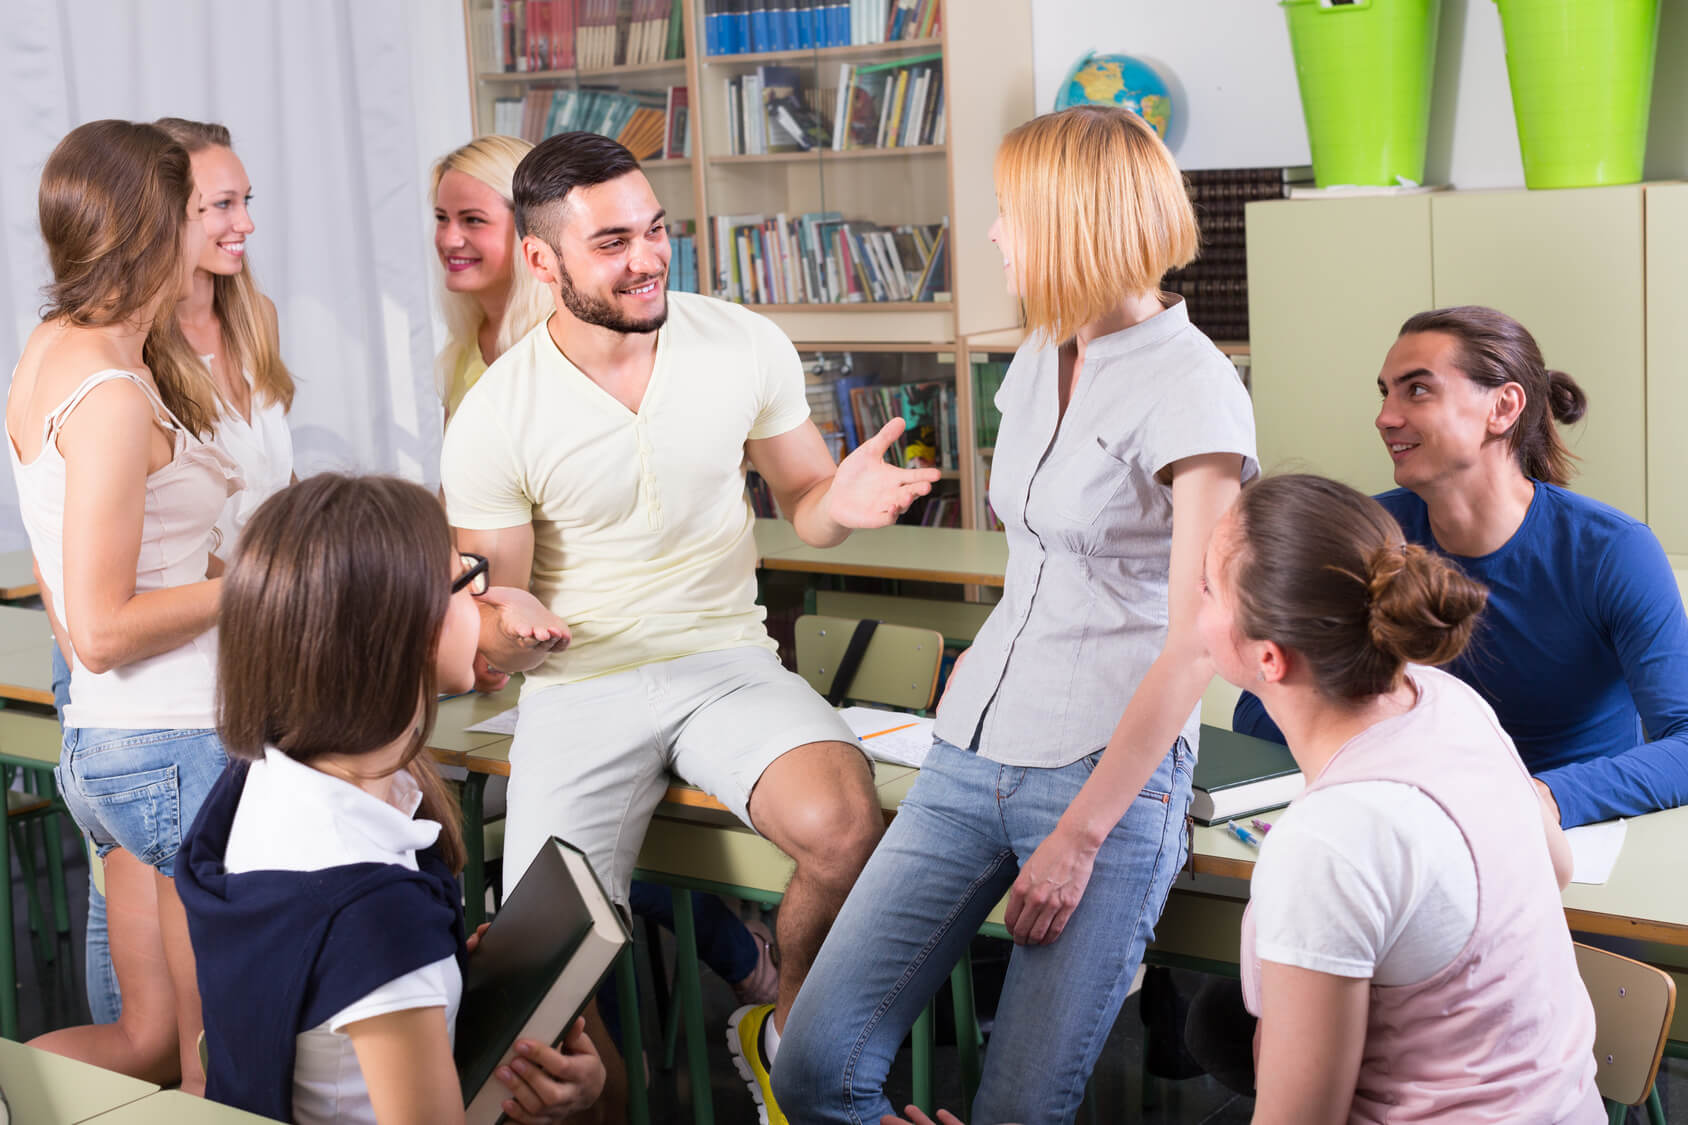 Student making conversation with others